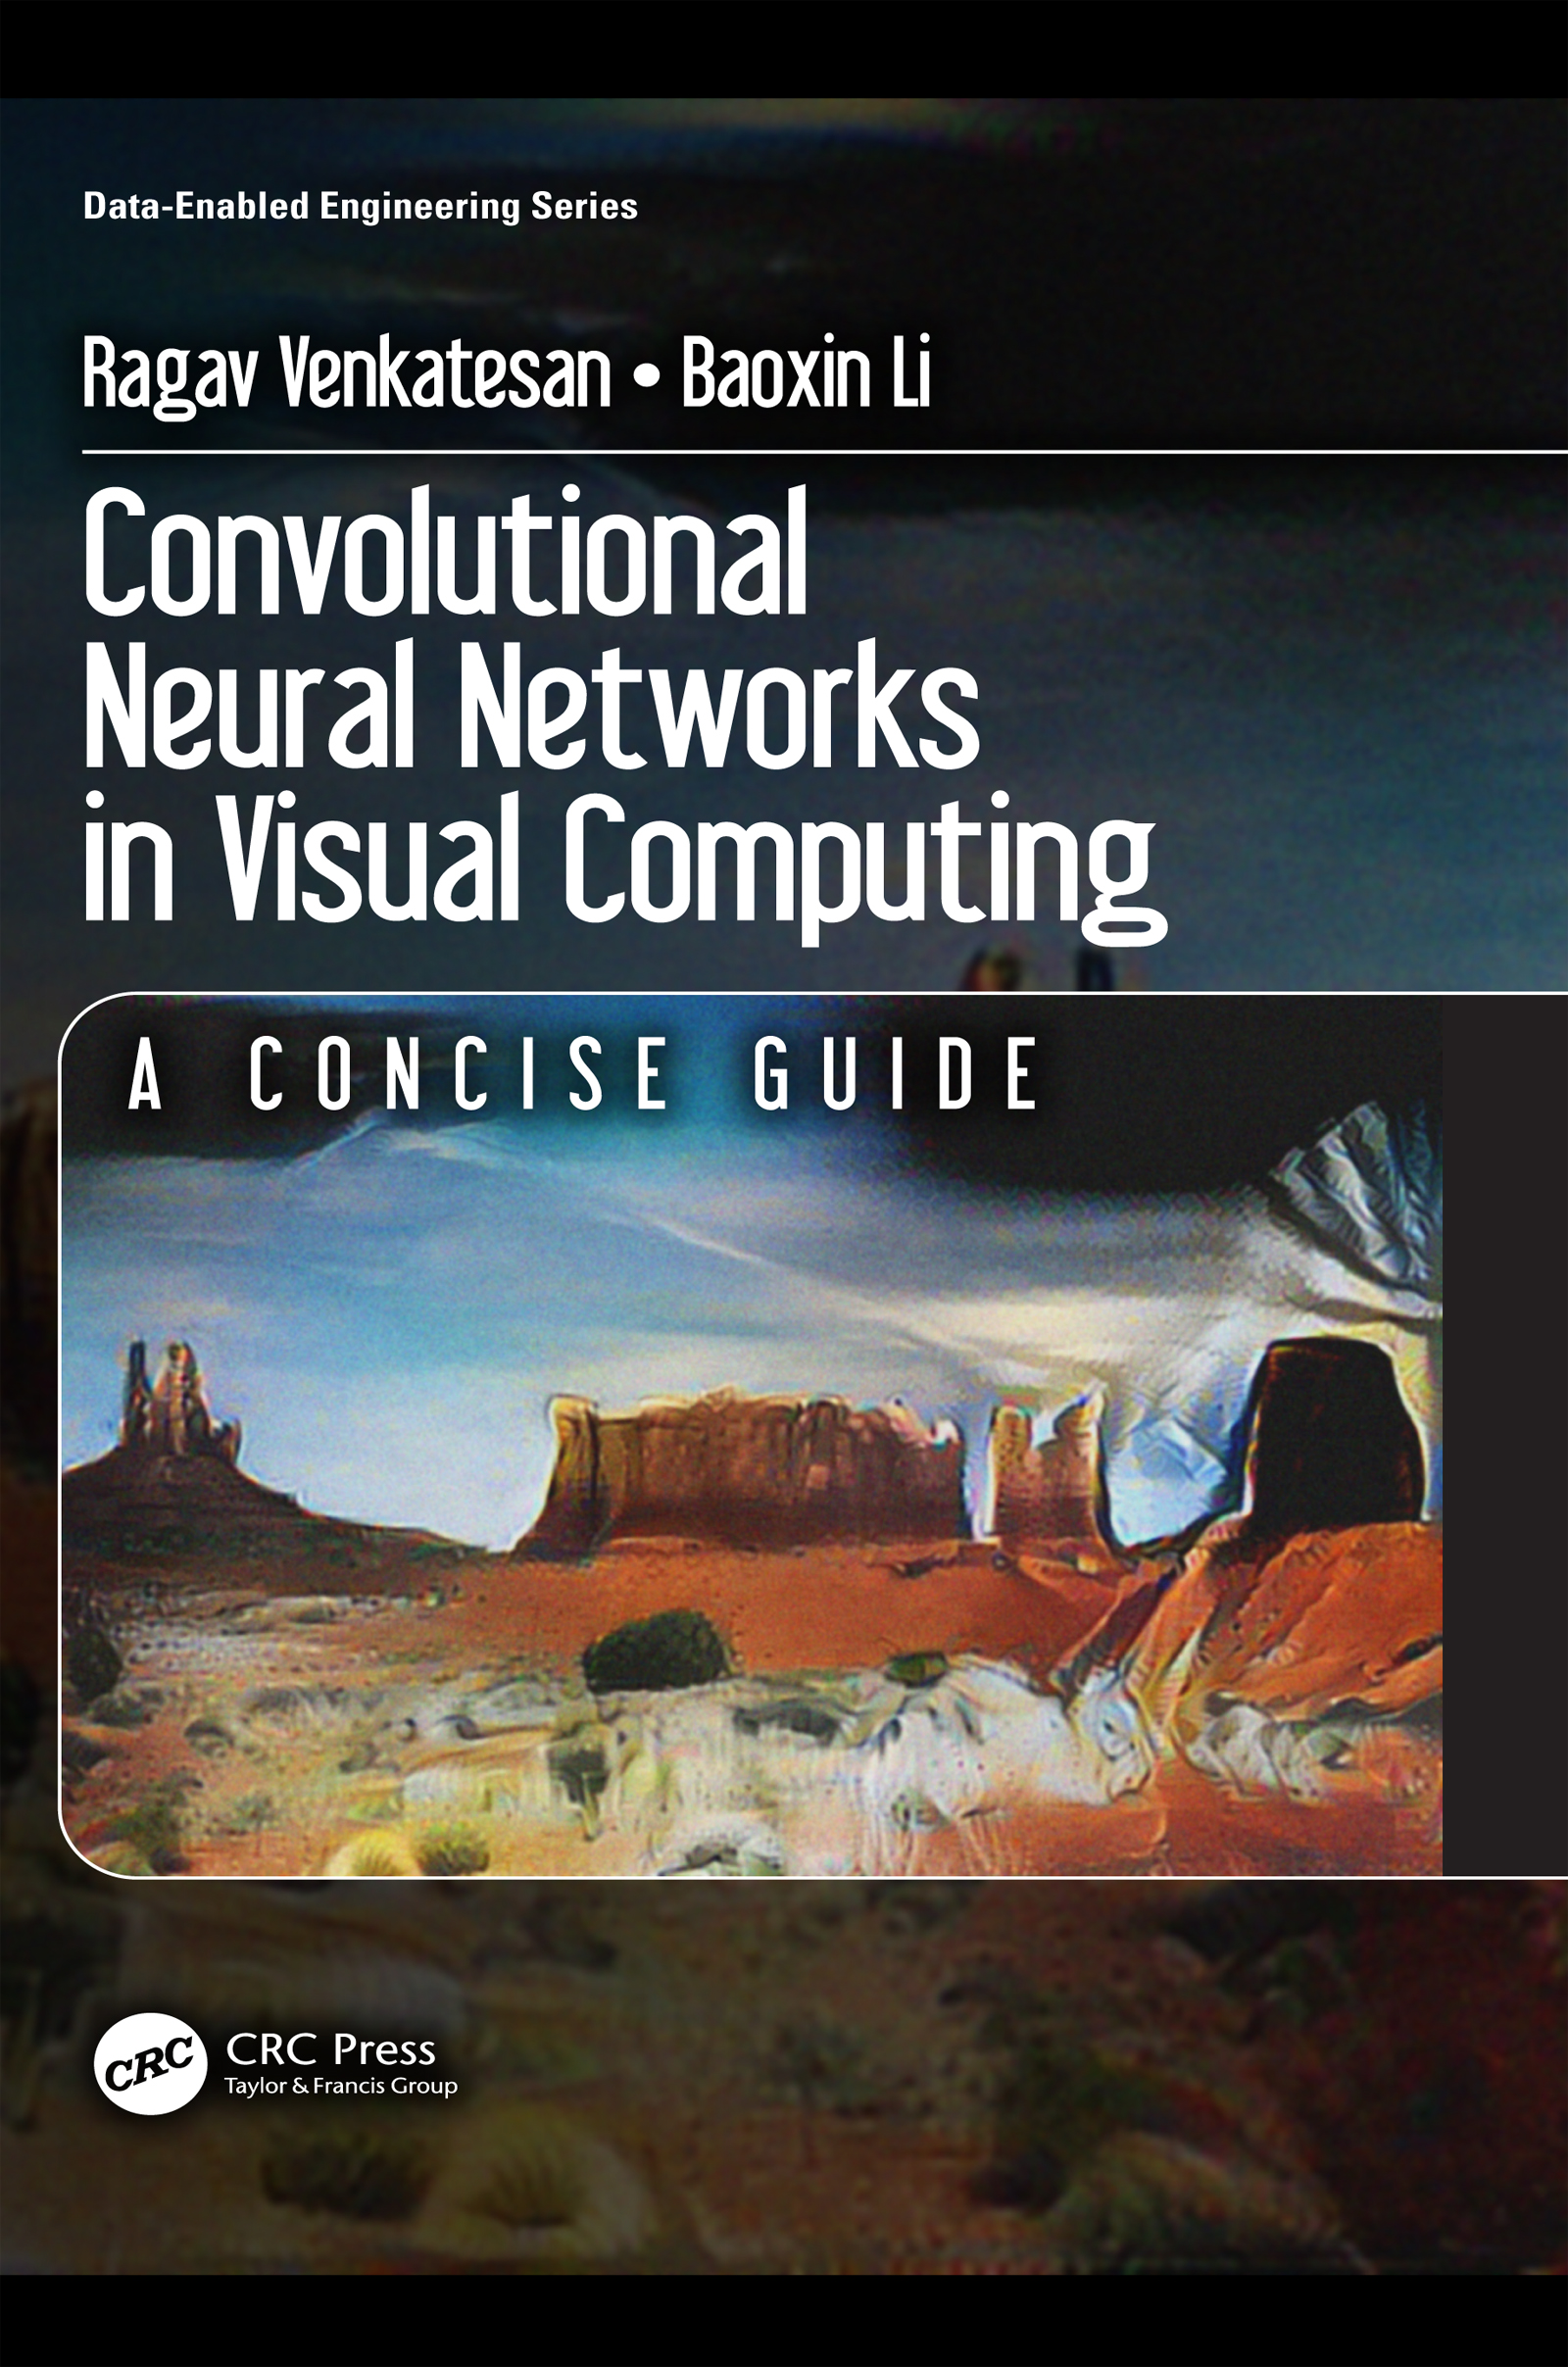 Convolutional Neural Networks in Visual Computing | A